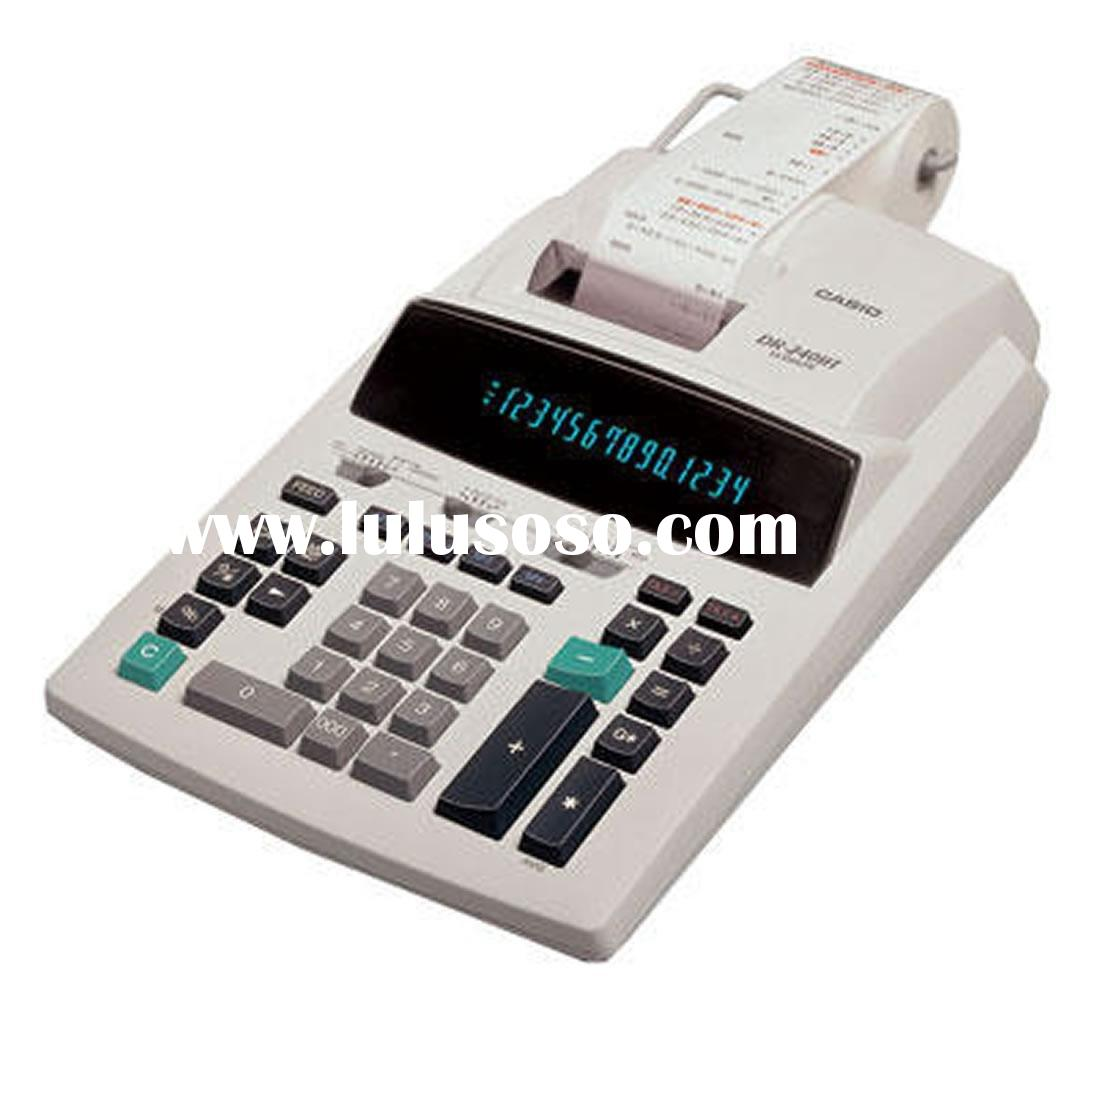 Casio DR 240TM Printing Calculator